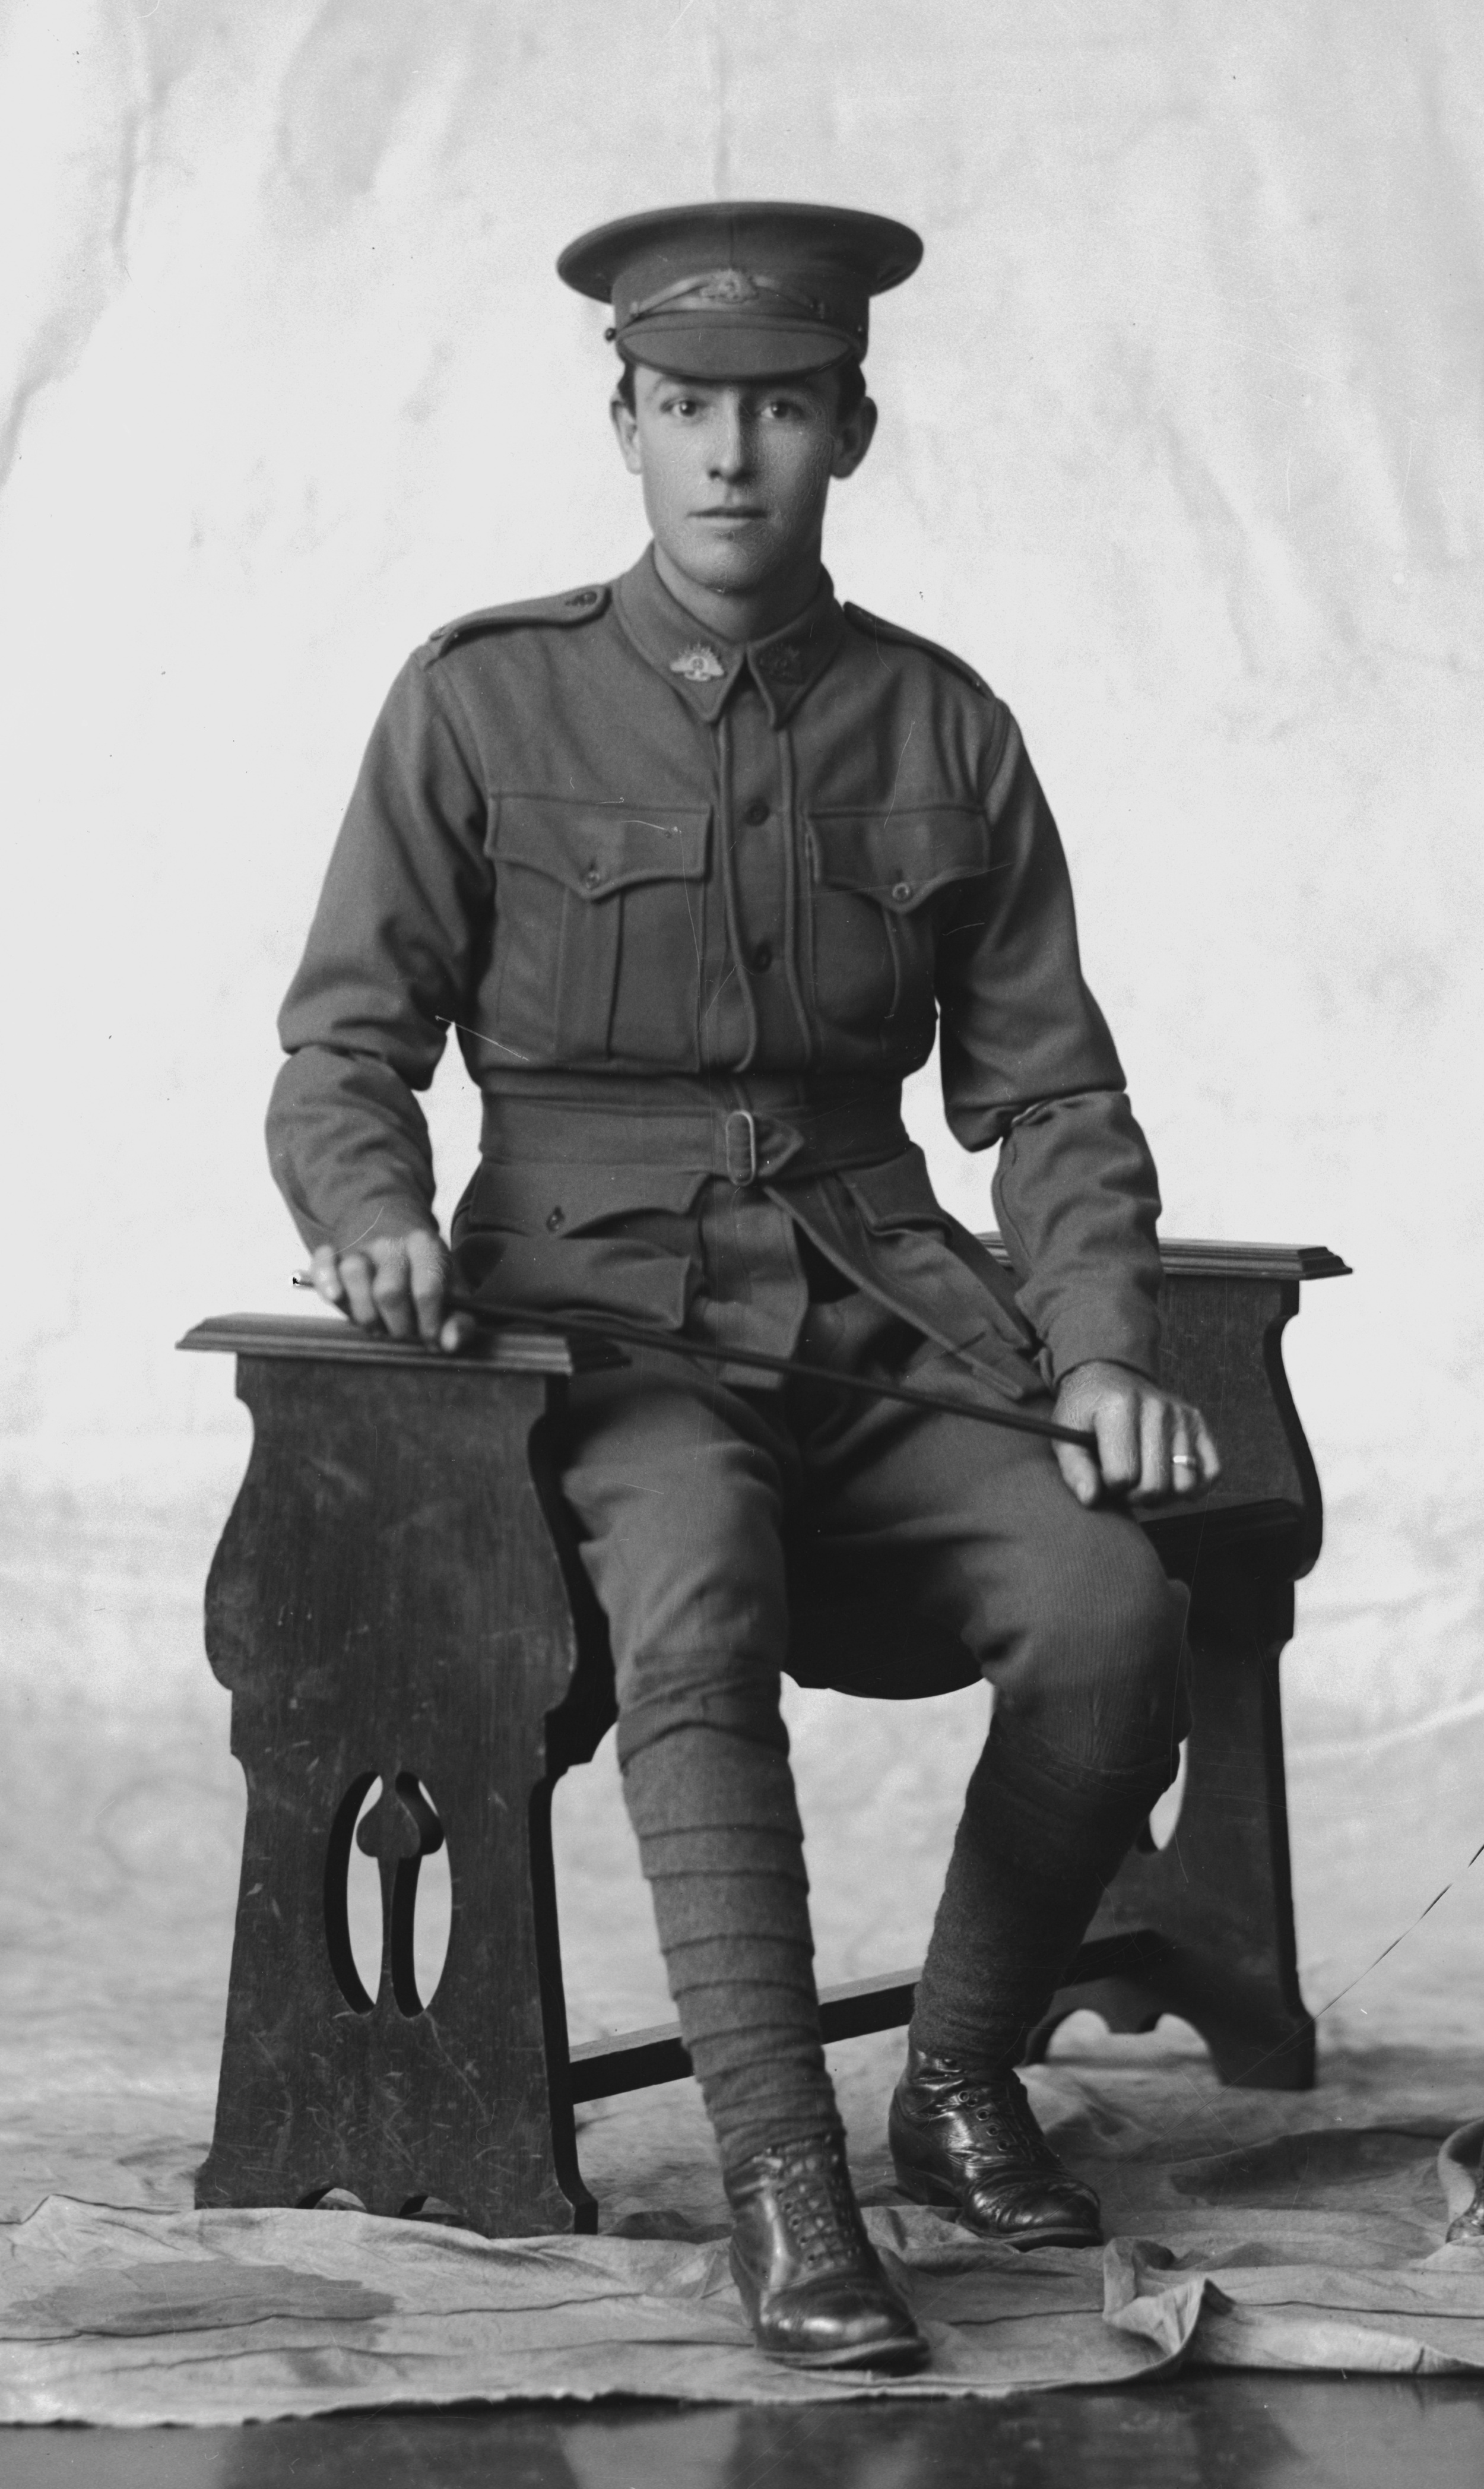 P hotographed at the Dease Studio, 117 Barrack Street Perth WA Image courtesy of the State Library of Western Australia: 108388PD